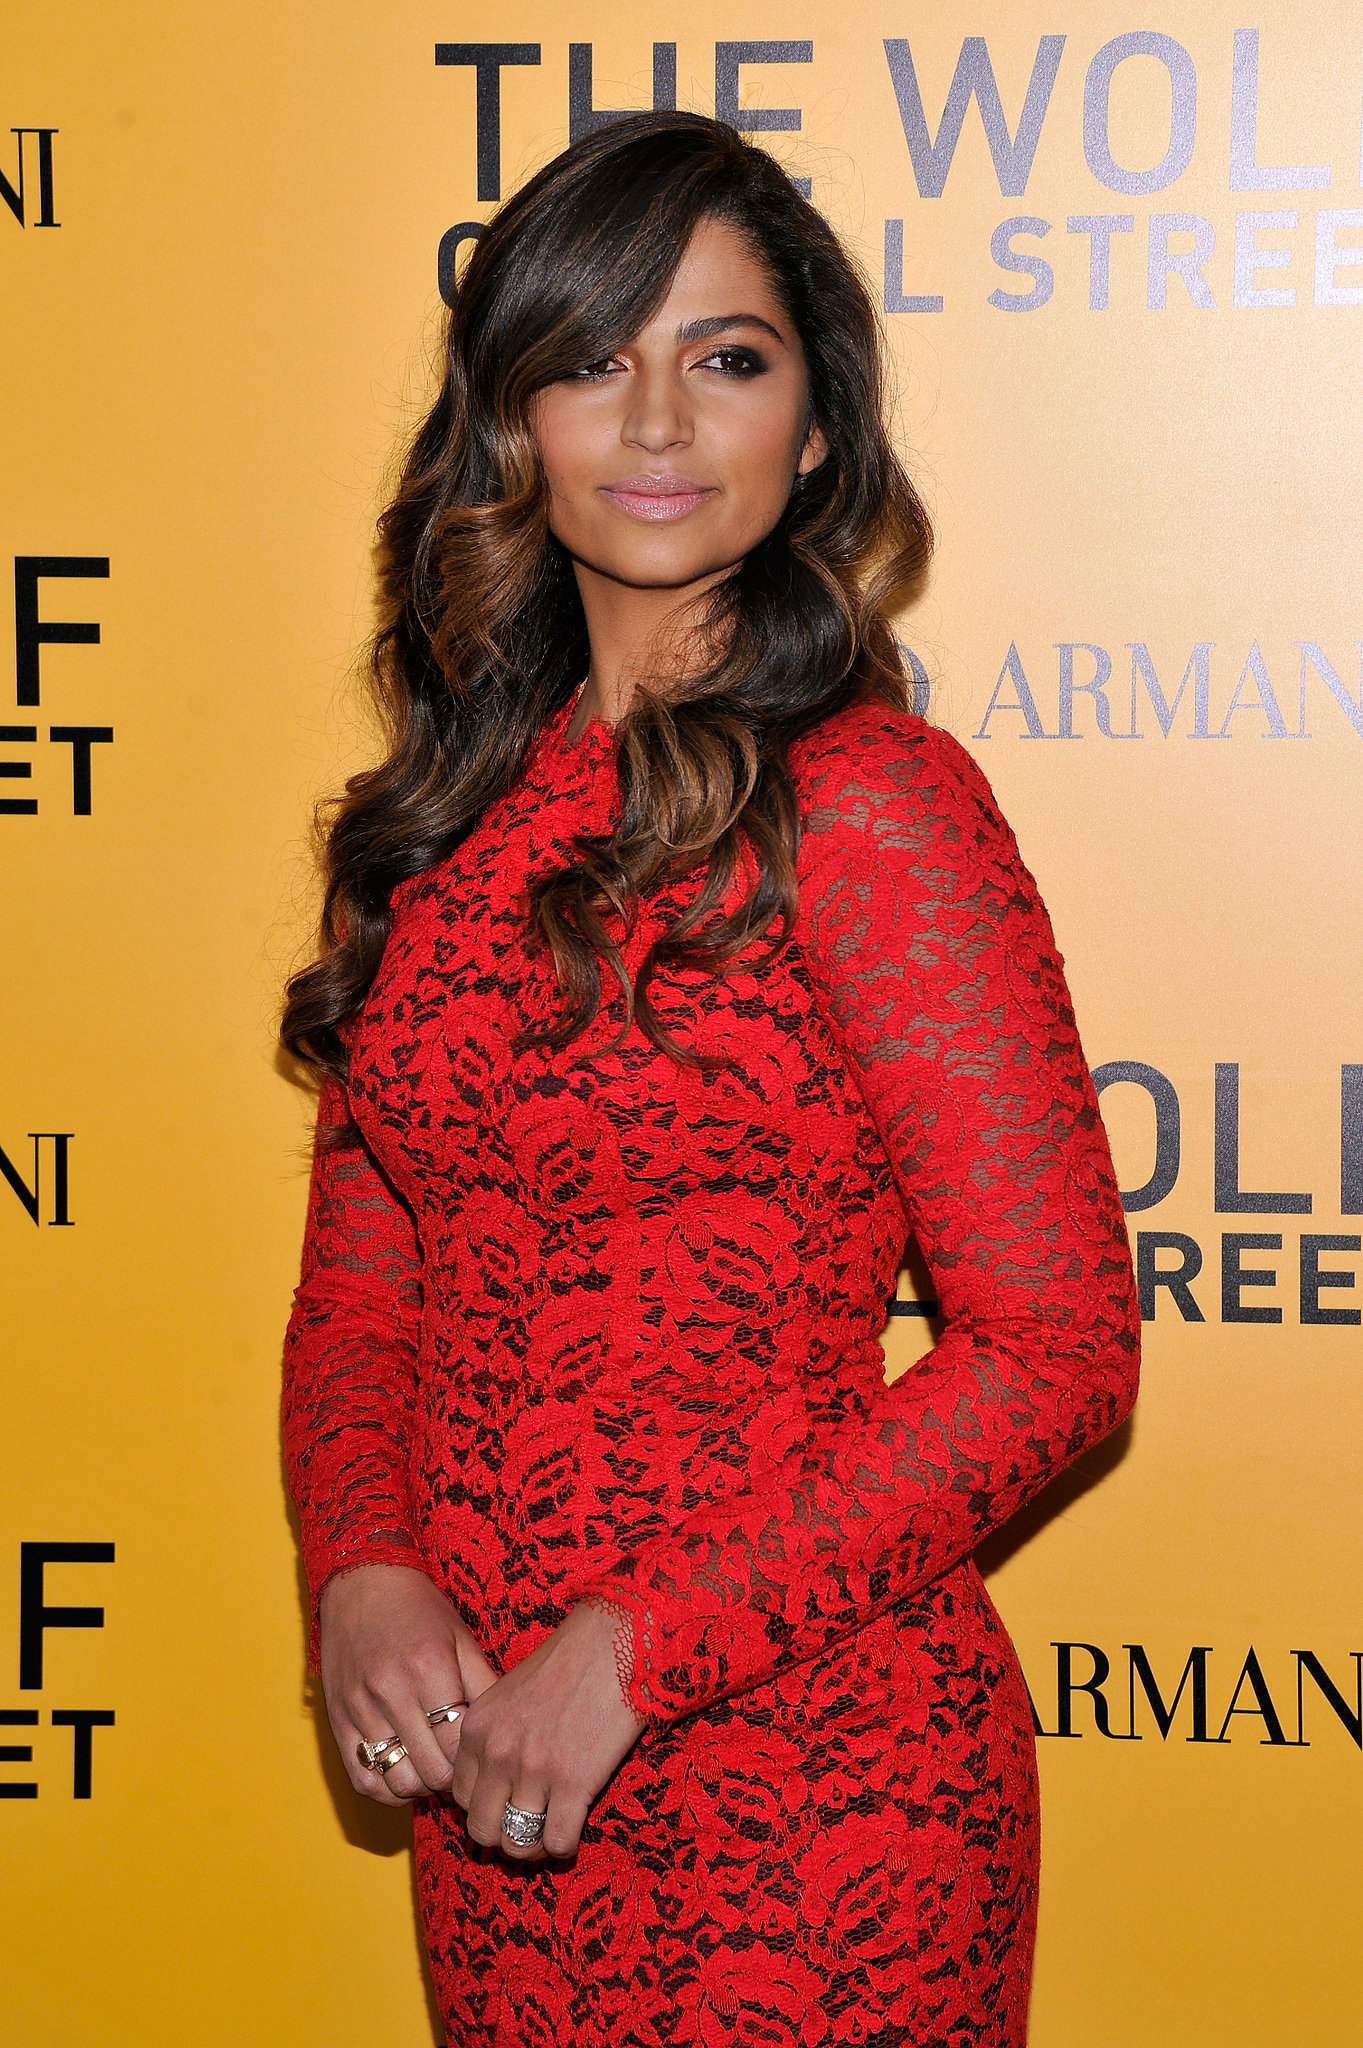 Camila Alves wore a fitted red dress to the NYC premiere of The Wolf of Wall Street.